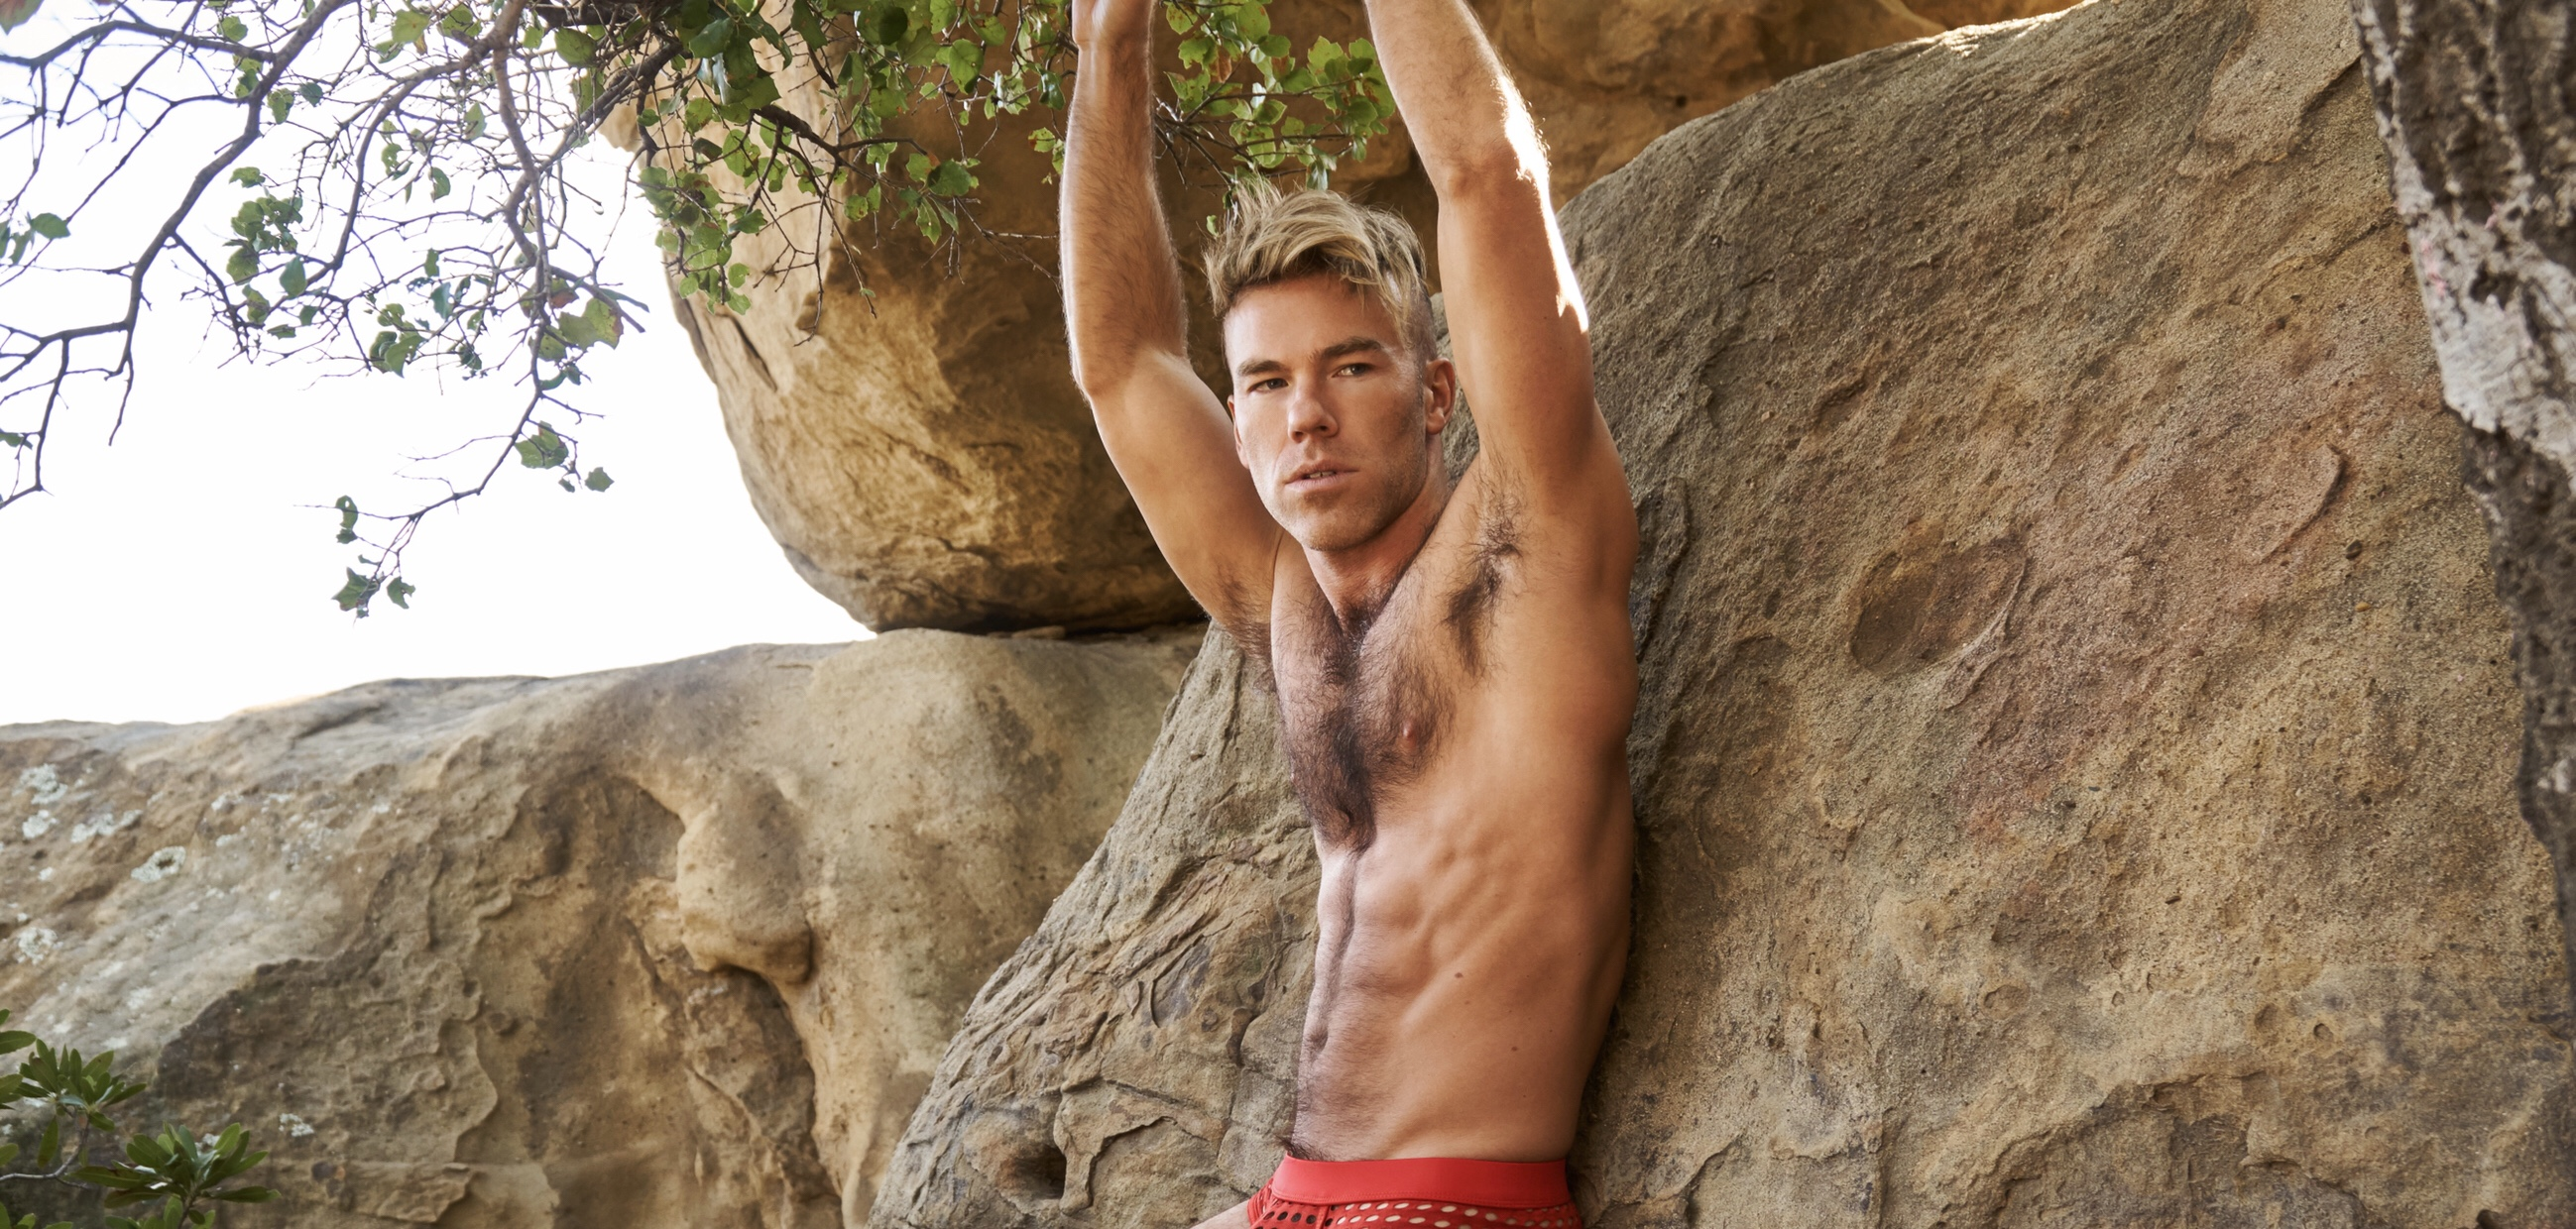 DW CHASE by CARL PROCTOR | Daily Squirt